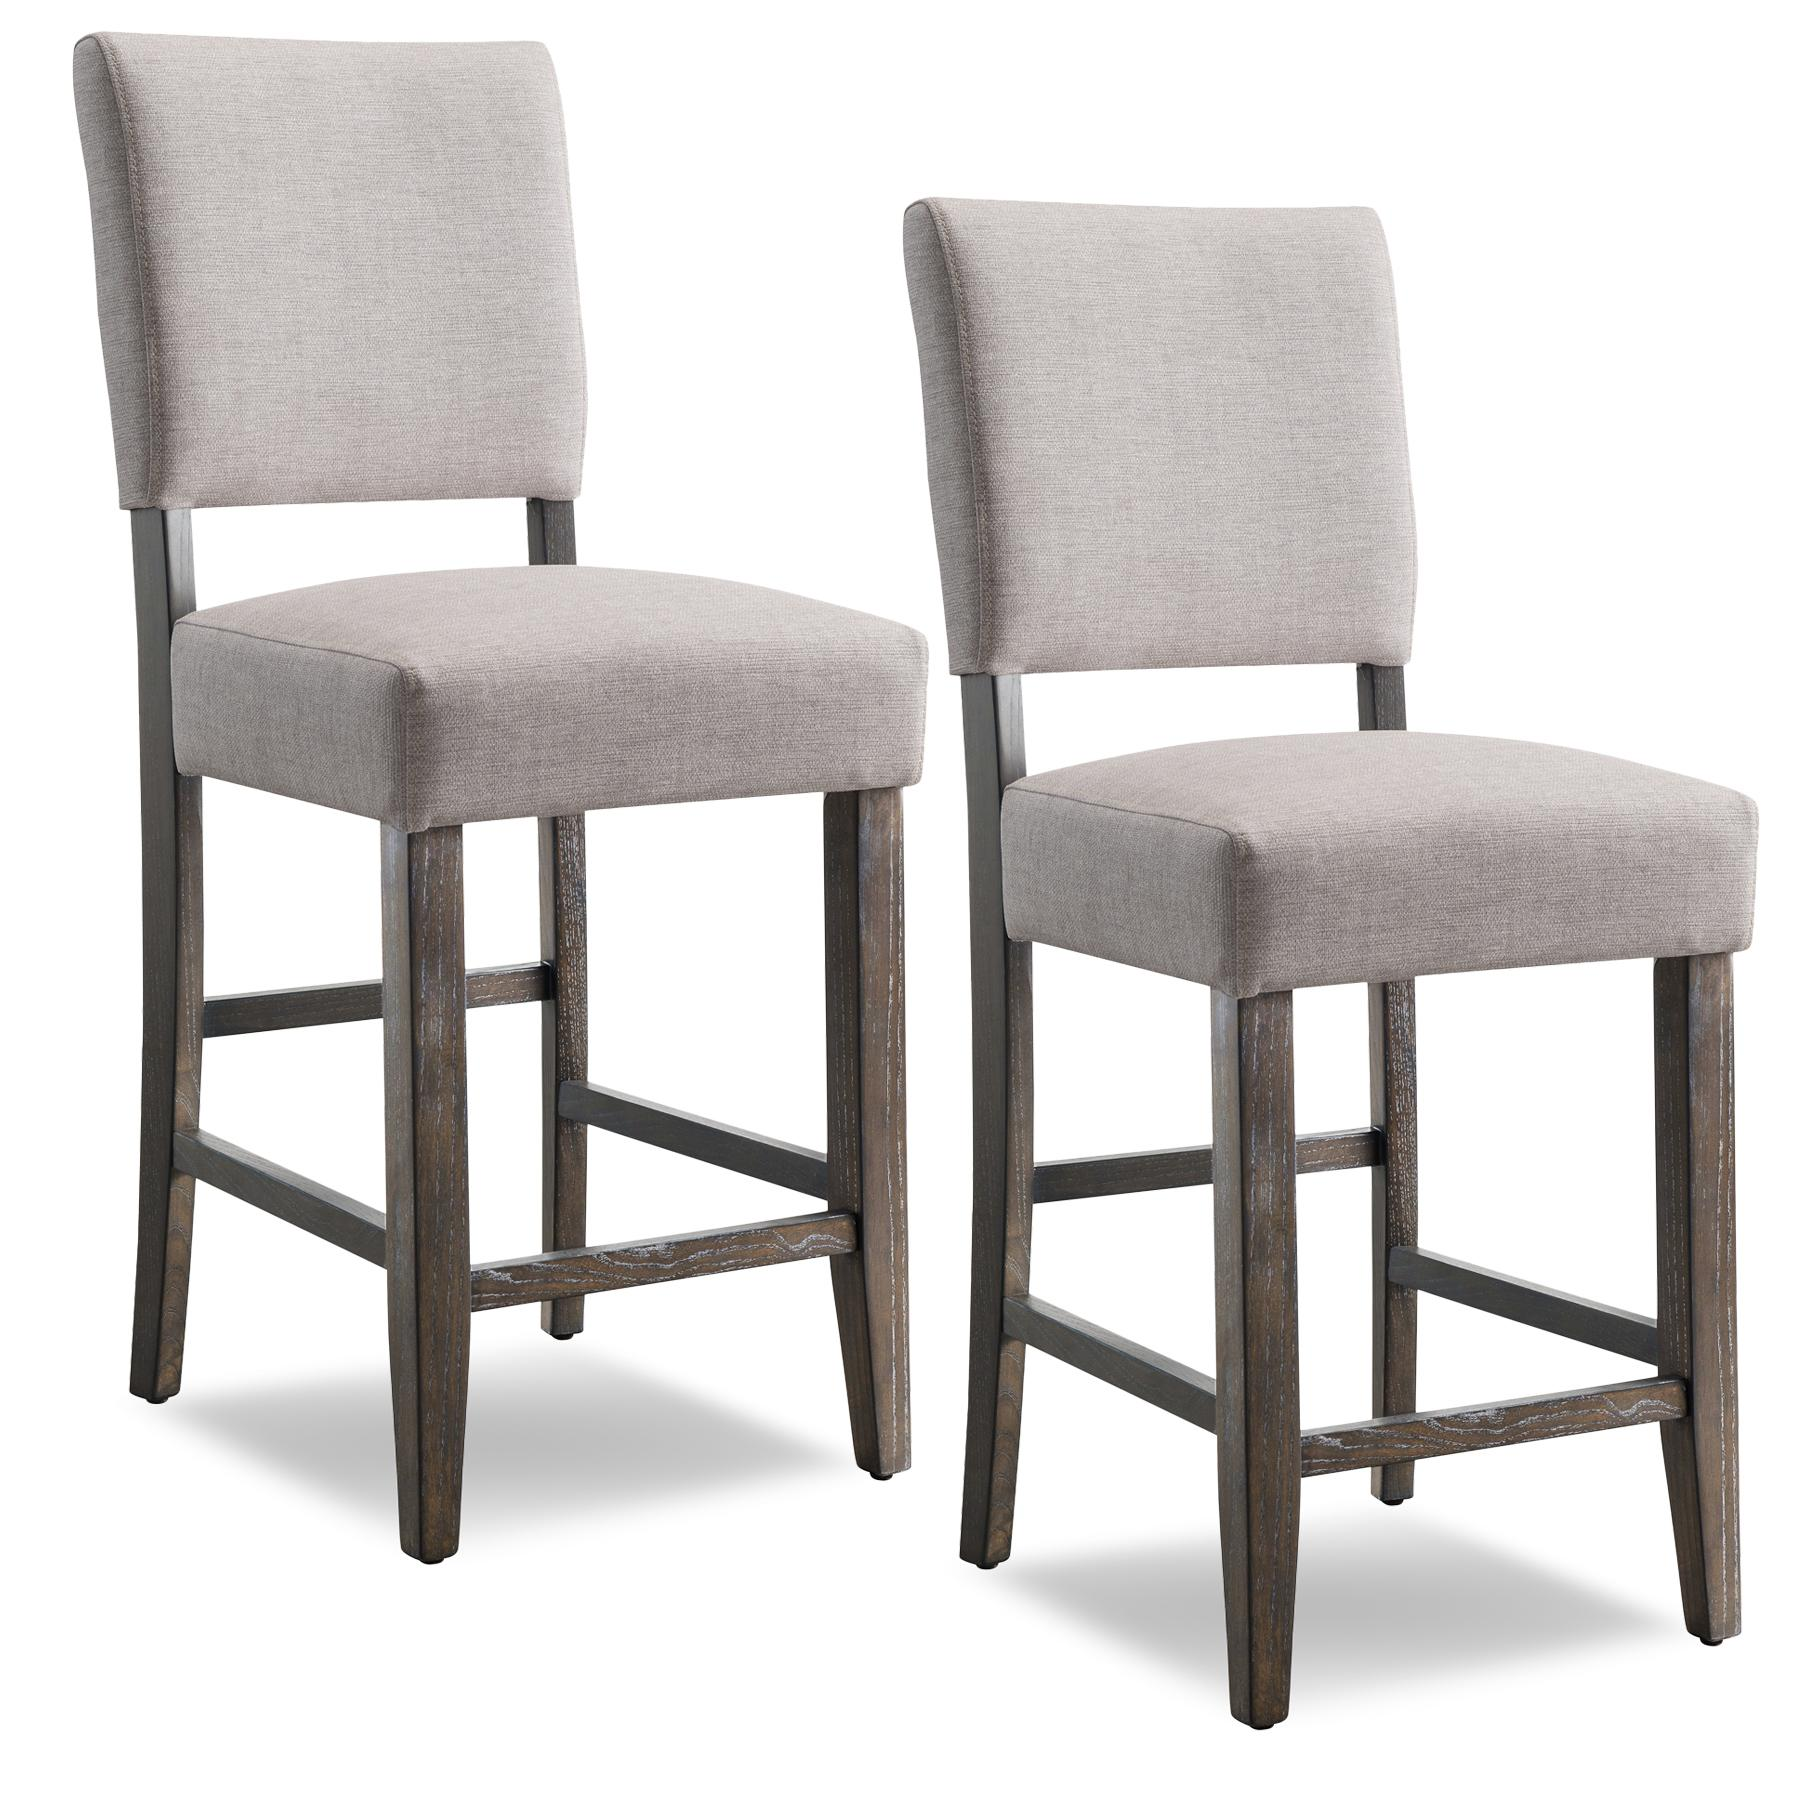 Bar Stools Counter Height Backless Counter Stool